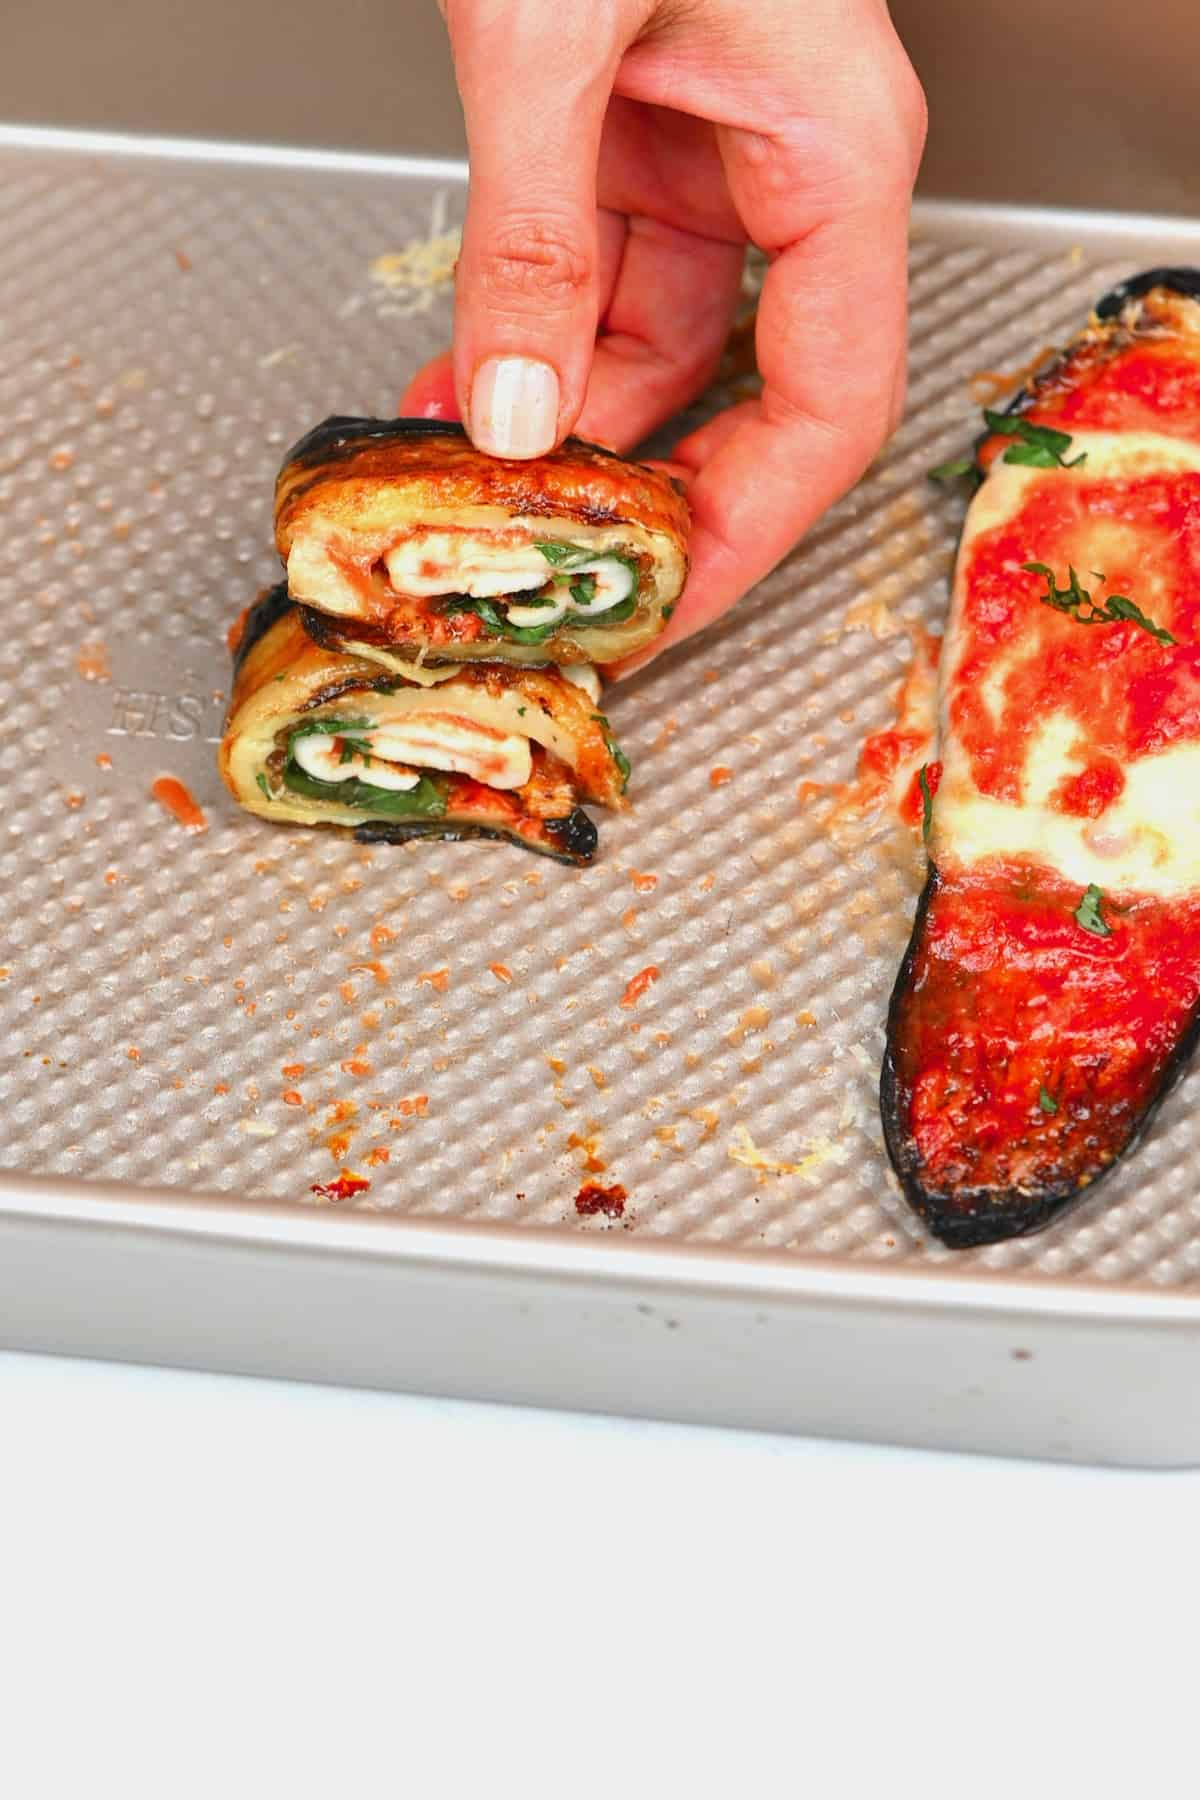 Two rolls of baked eggplant and cheese